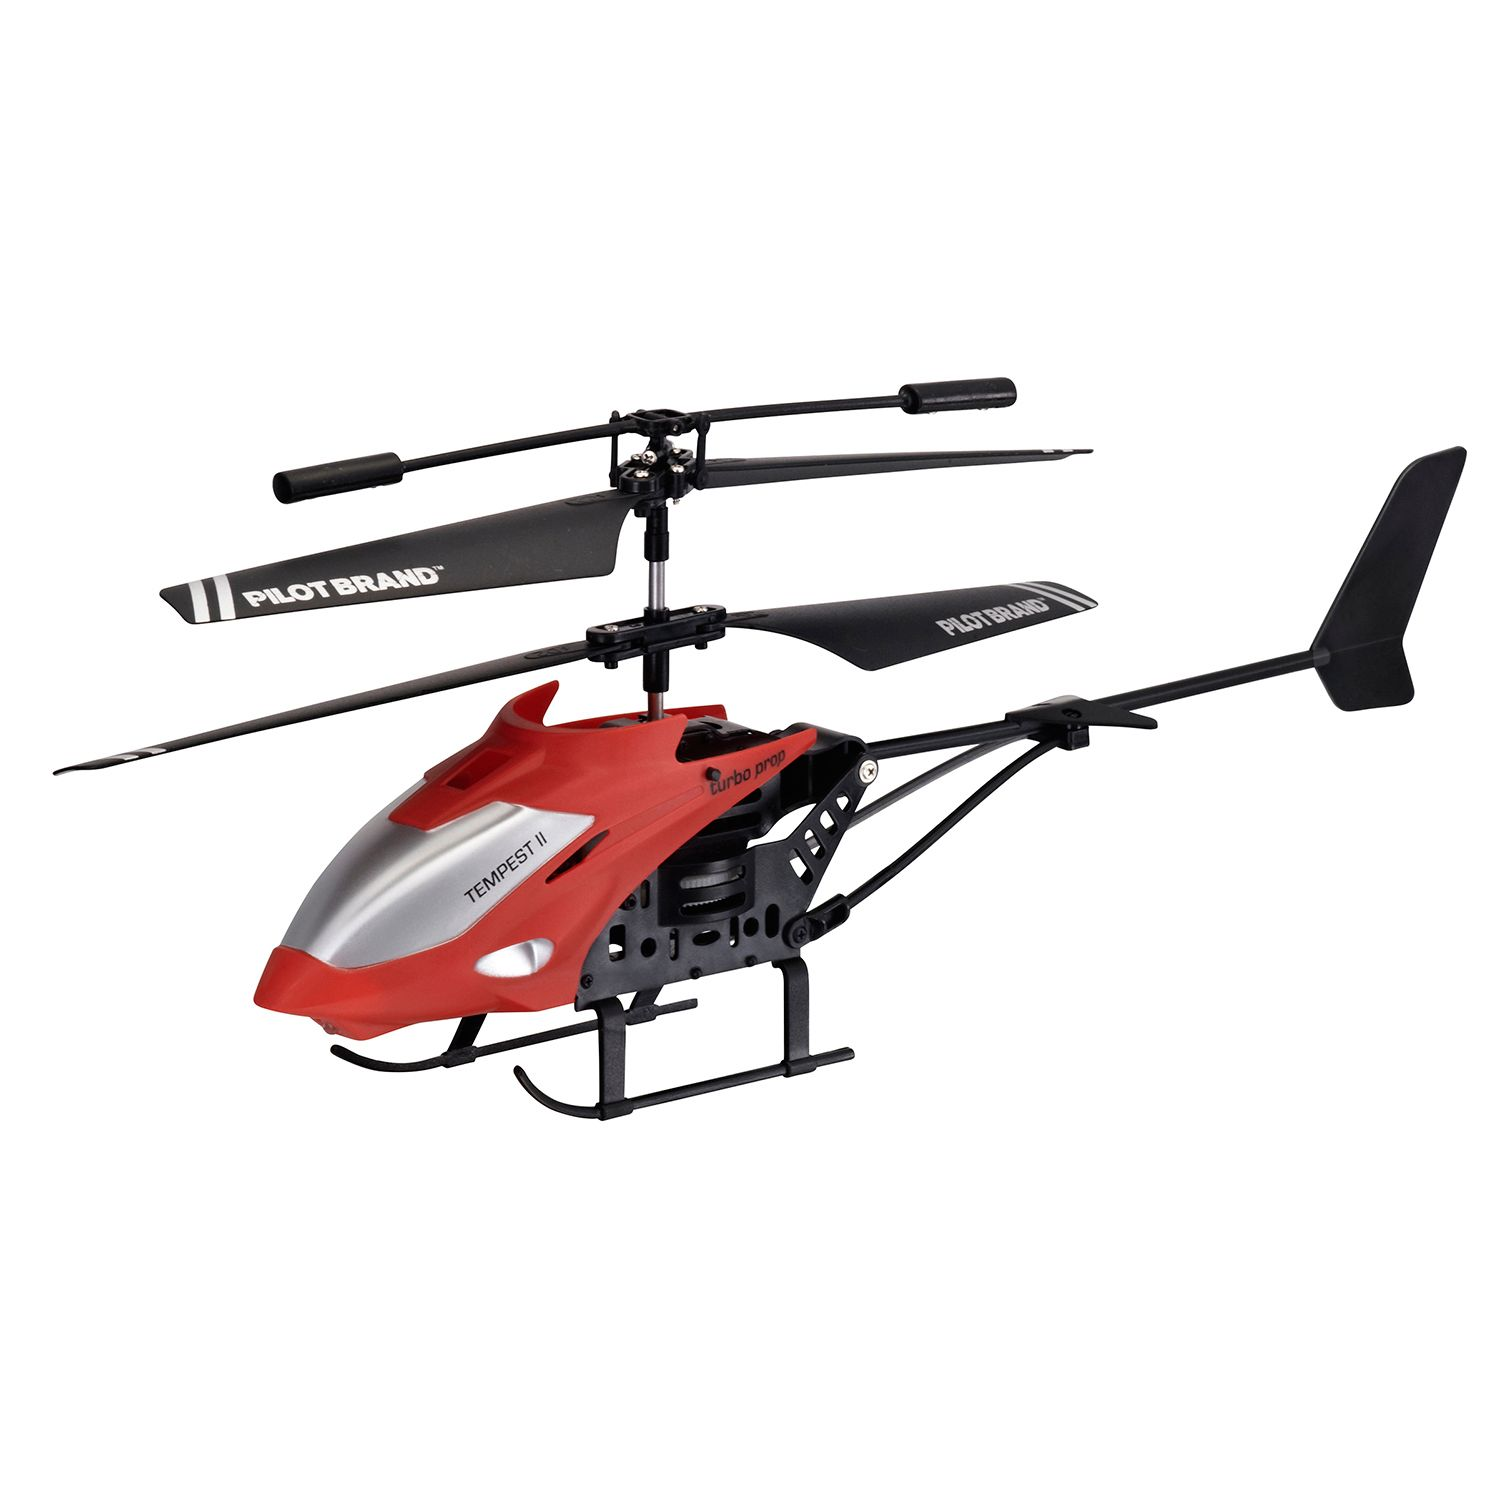 Boys Remote Control Toy Planes & Toy Helicopters Vehicles